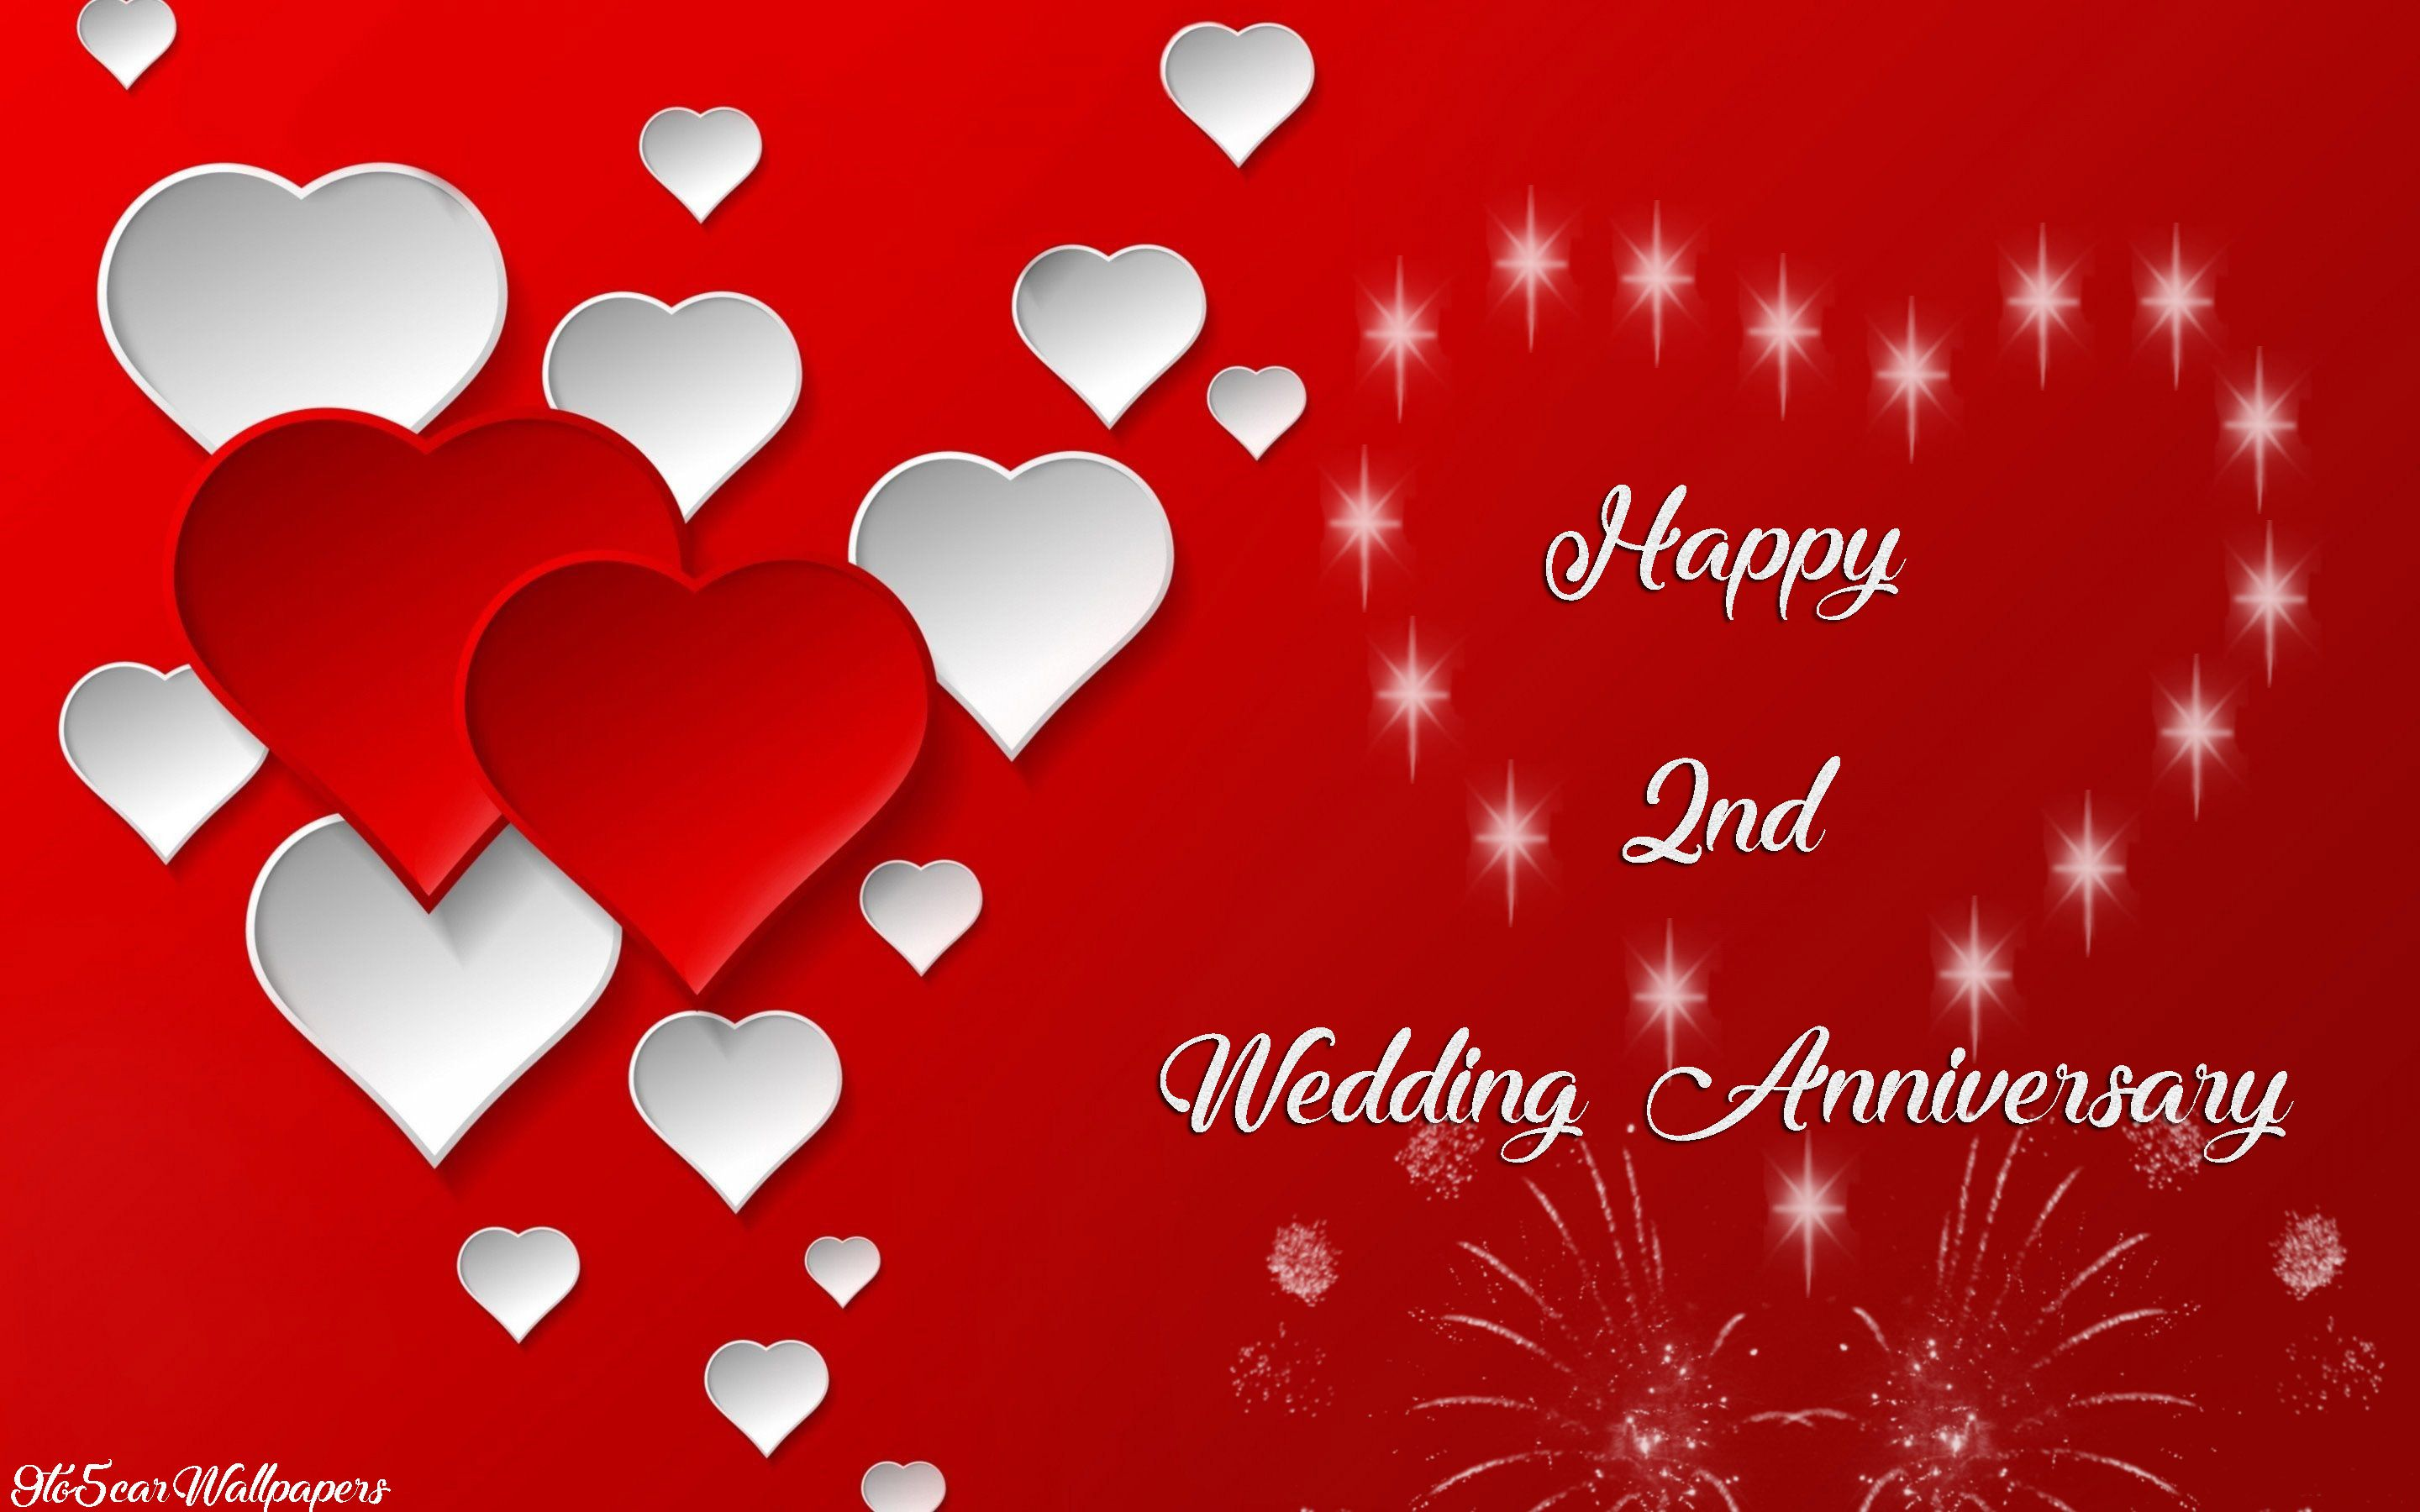 Second Marriage Anniversary Images Downloads Happy Anniversary Wishes Happy Marriage Anniversary Happy Wedding Anniversary Wishes